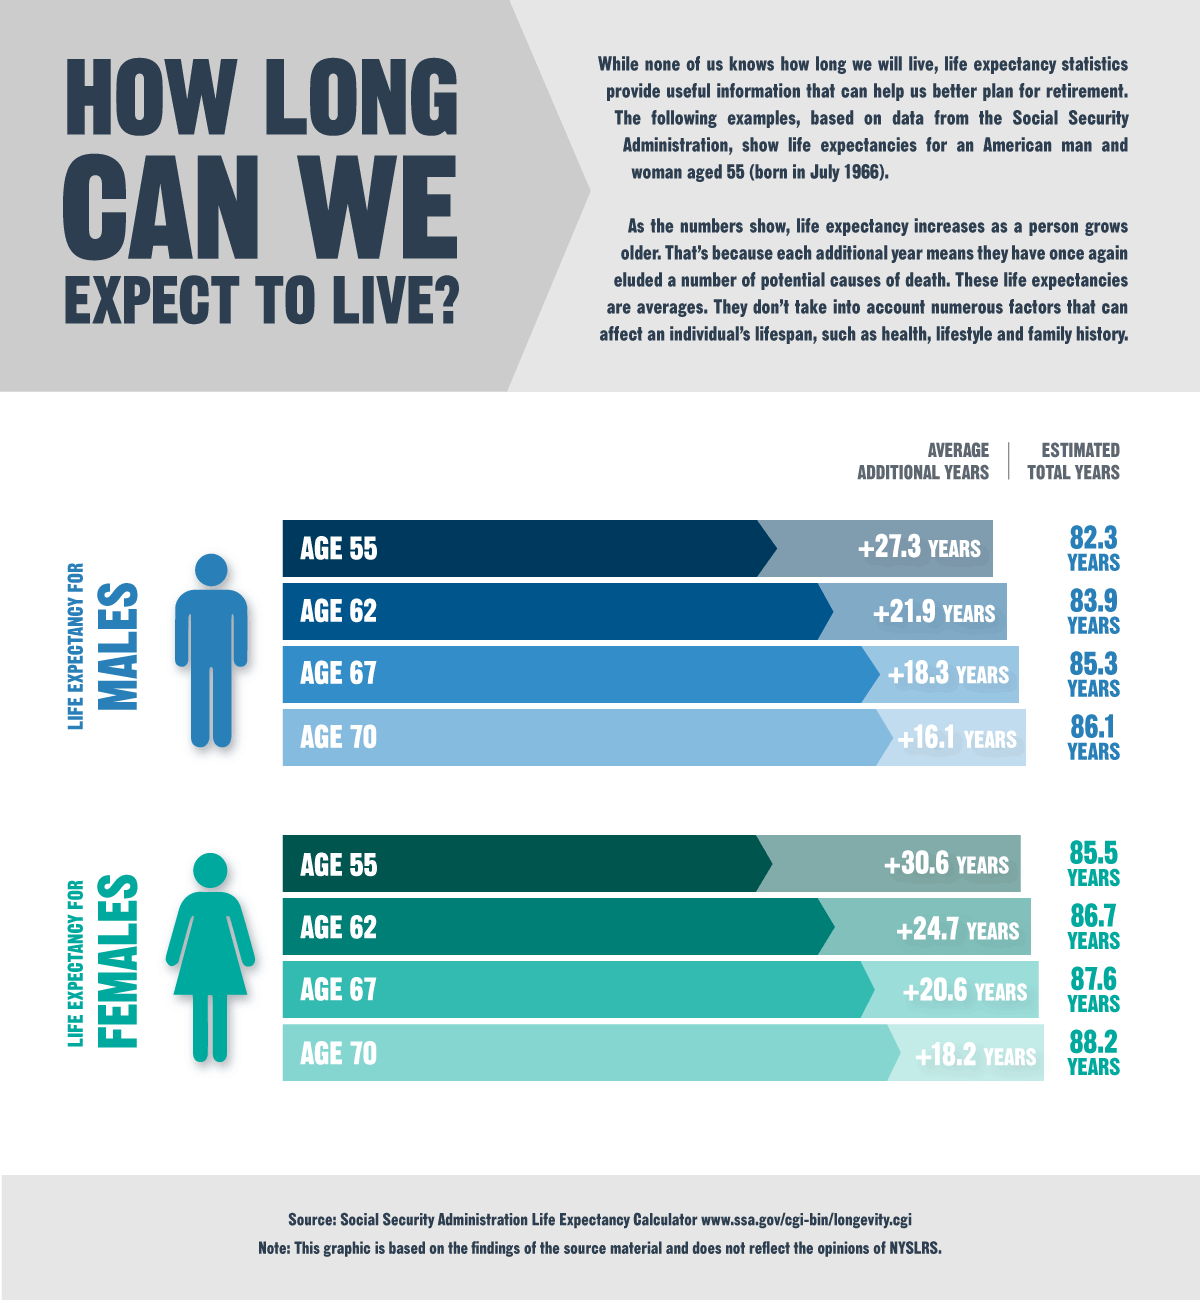 preparing for a long retirement - how long can we expect to live